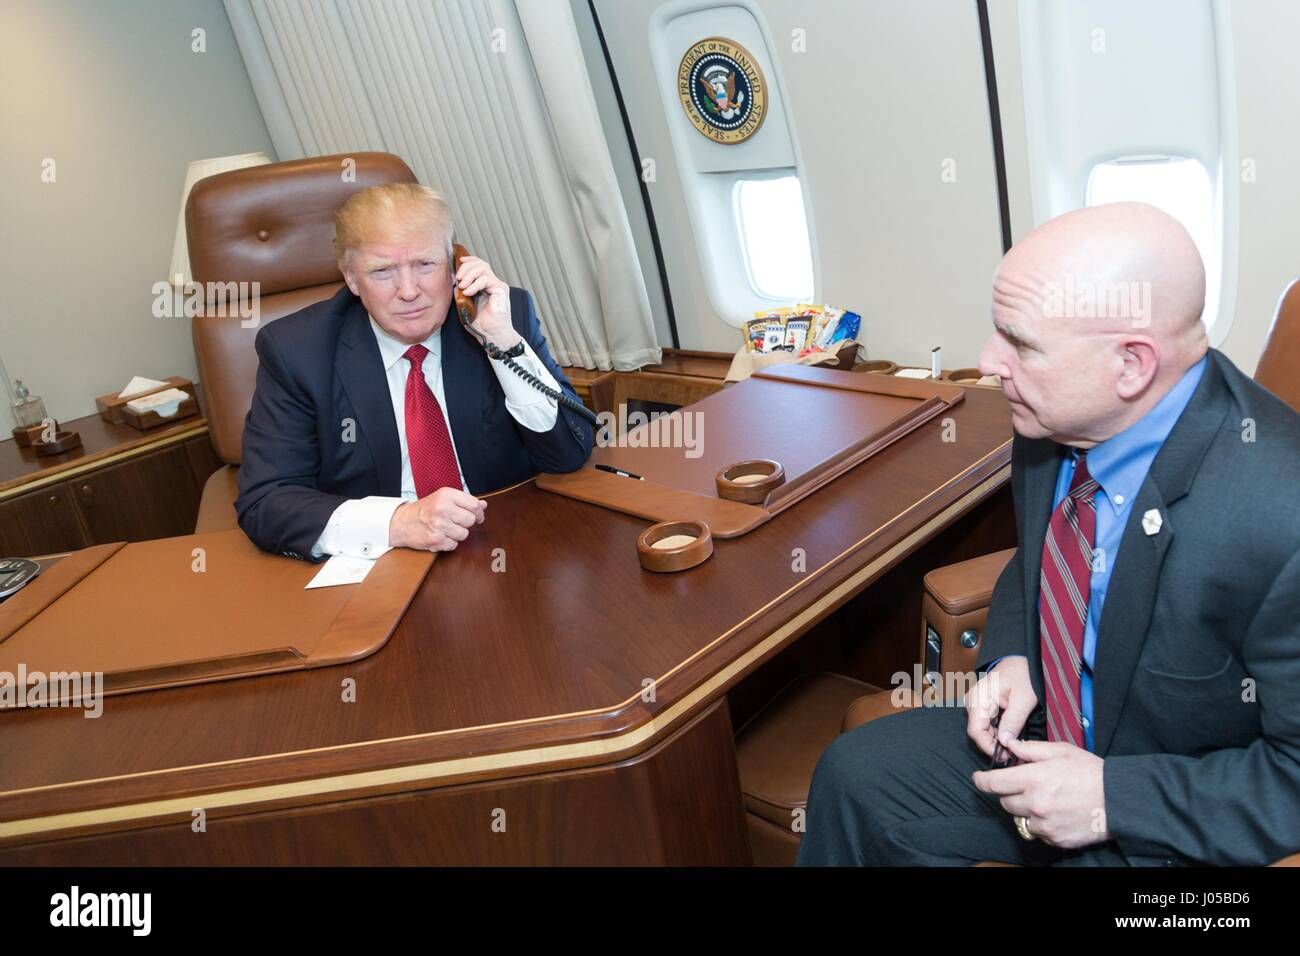 U.S President Donald Trump speaks by telephone with speaks with the commanding officers of the guided-missile destroyers - Stock Image